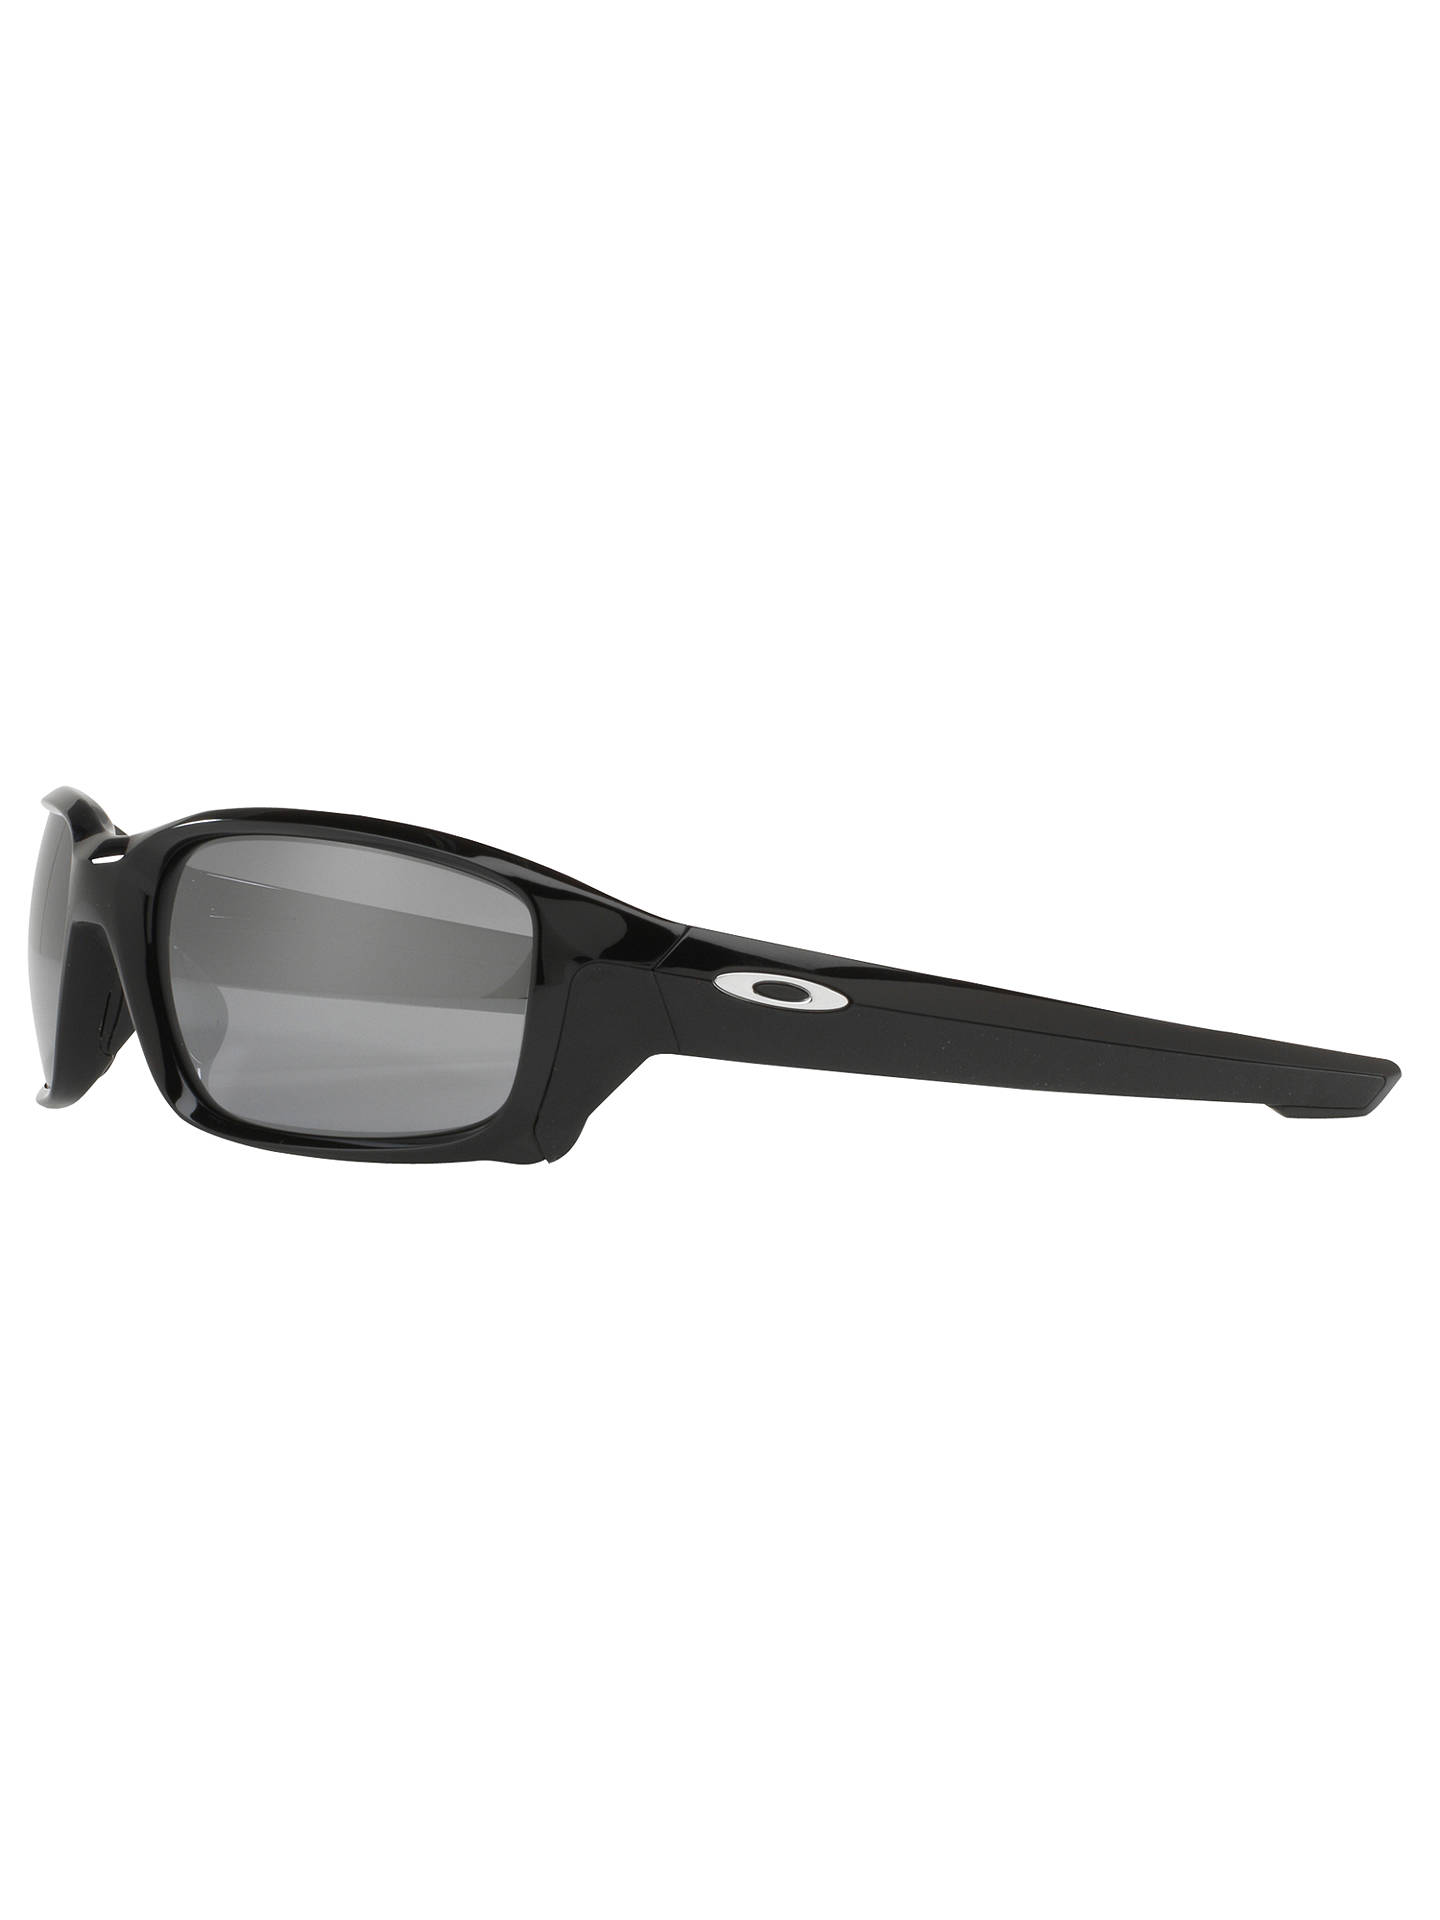 33a1afe6c6 Oakley OO9331 Straightlink Rectangular Sunglasses at John Lewis ...